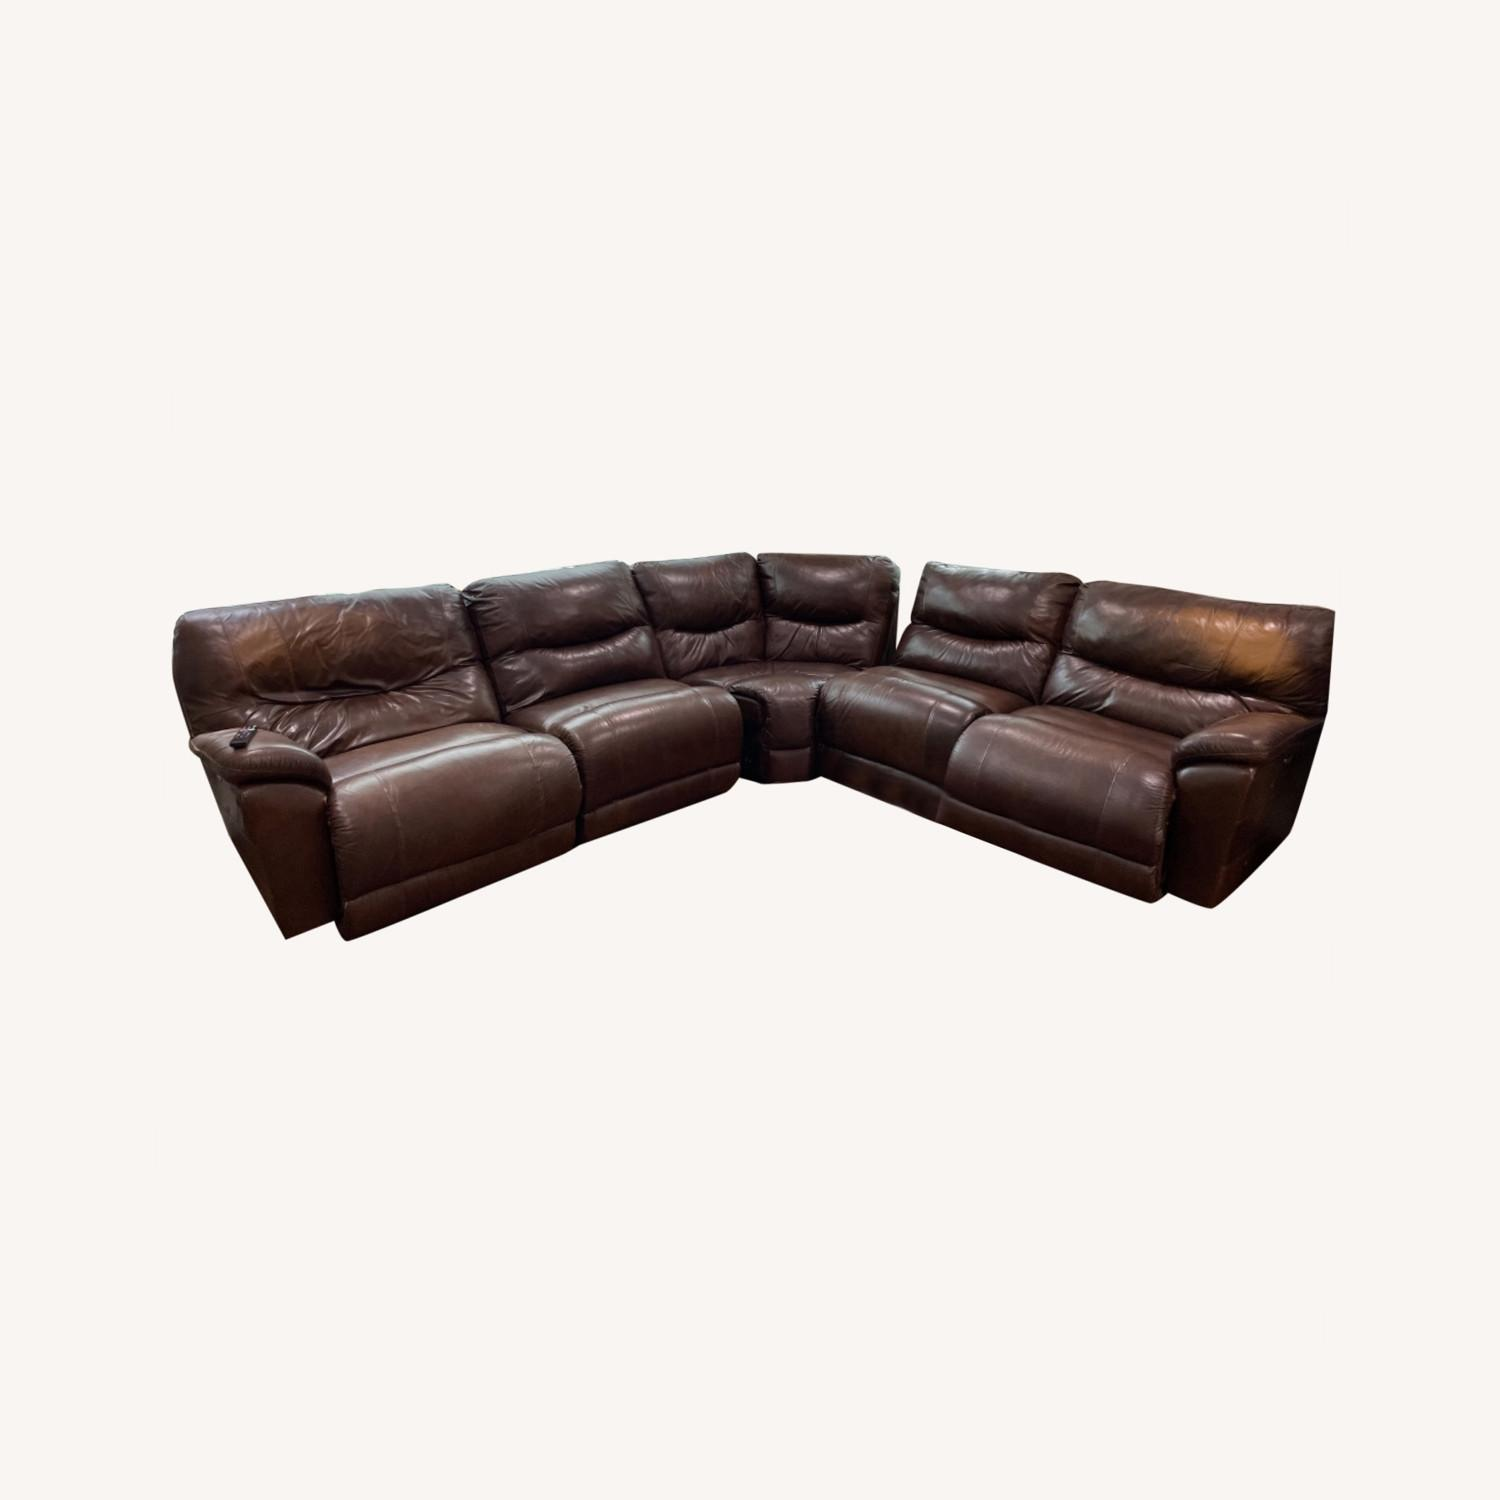 La-ZY-Boy Leather Sectional with Recliners - image-0